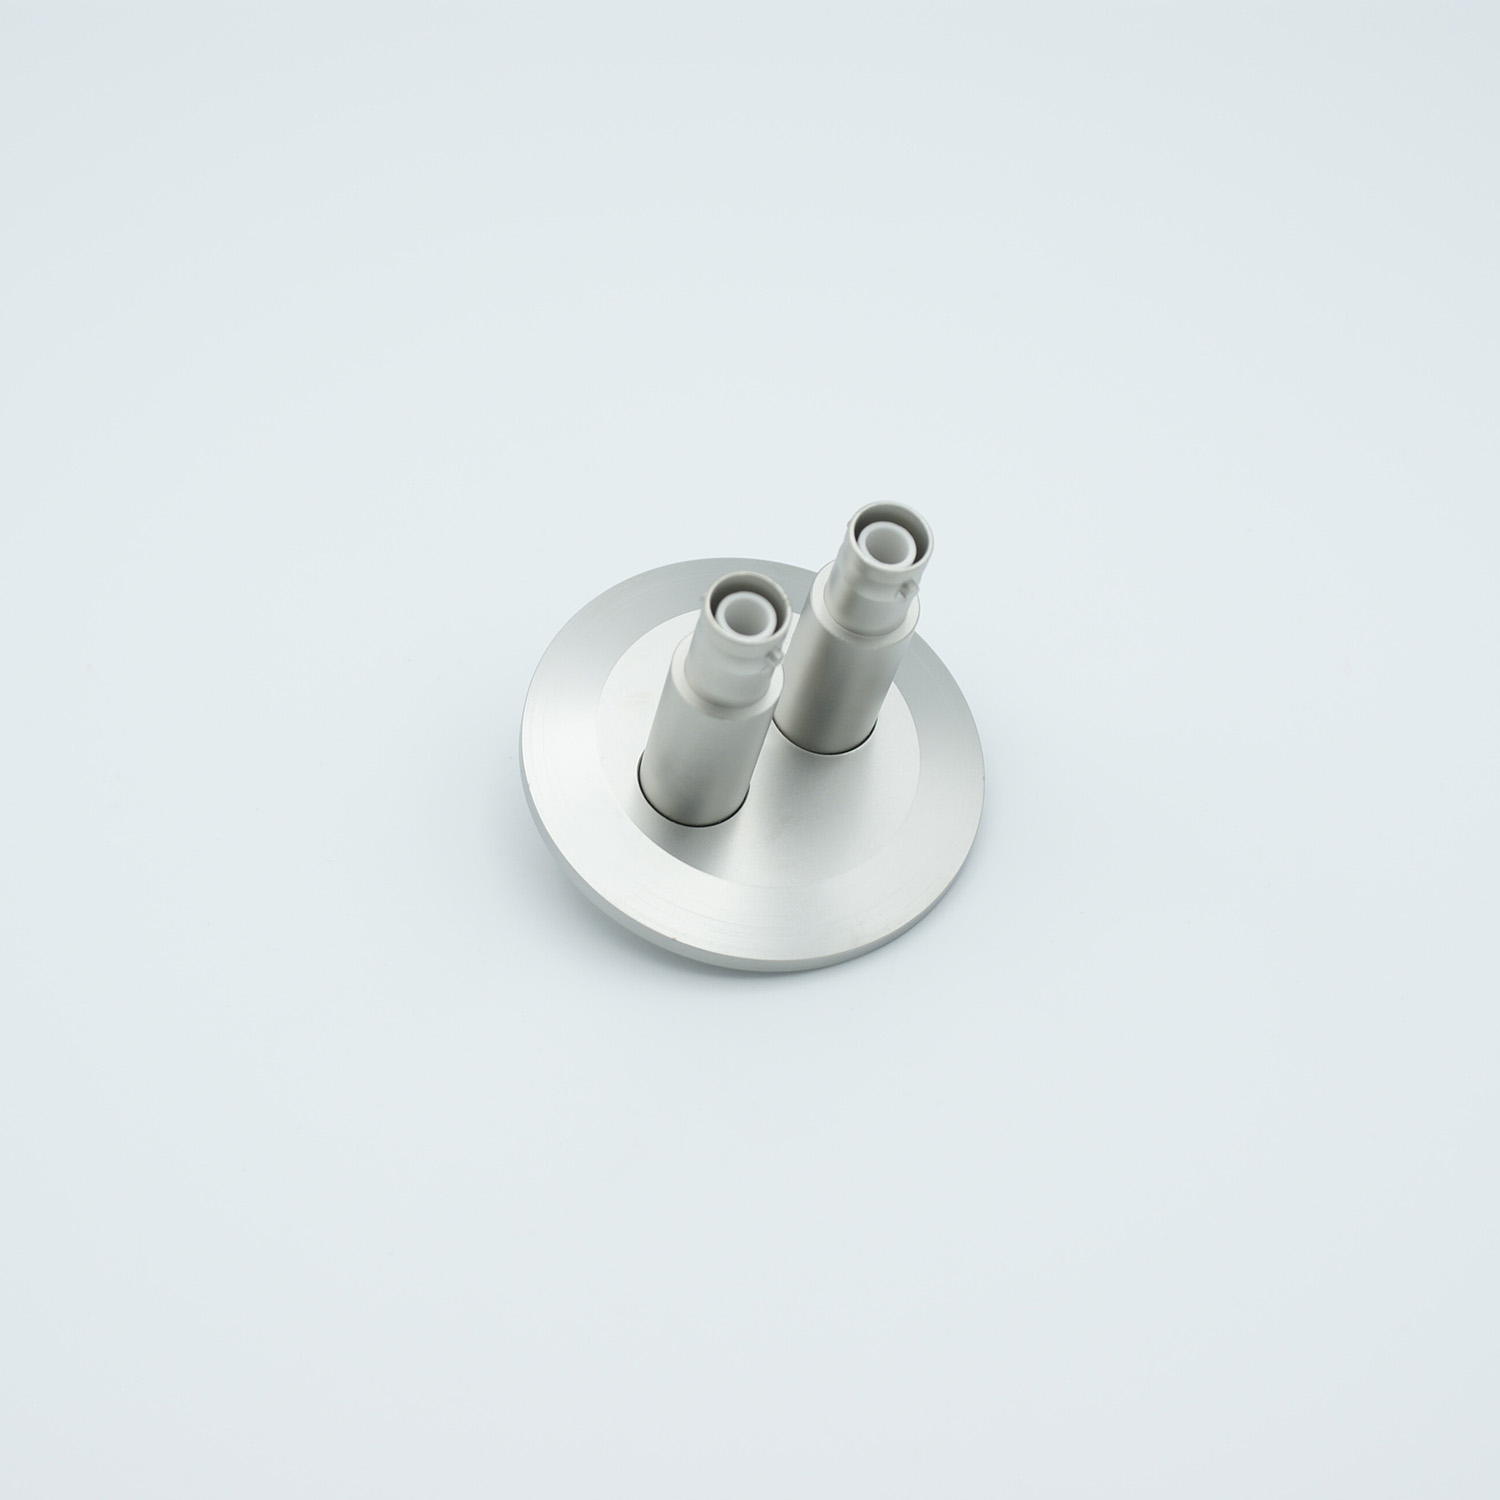 2 of grounded shield recessed SHV-5 Amp 5000 VDC feedthrough, air side connector included DN40KF